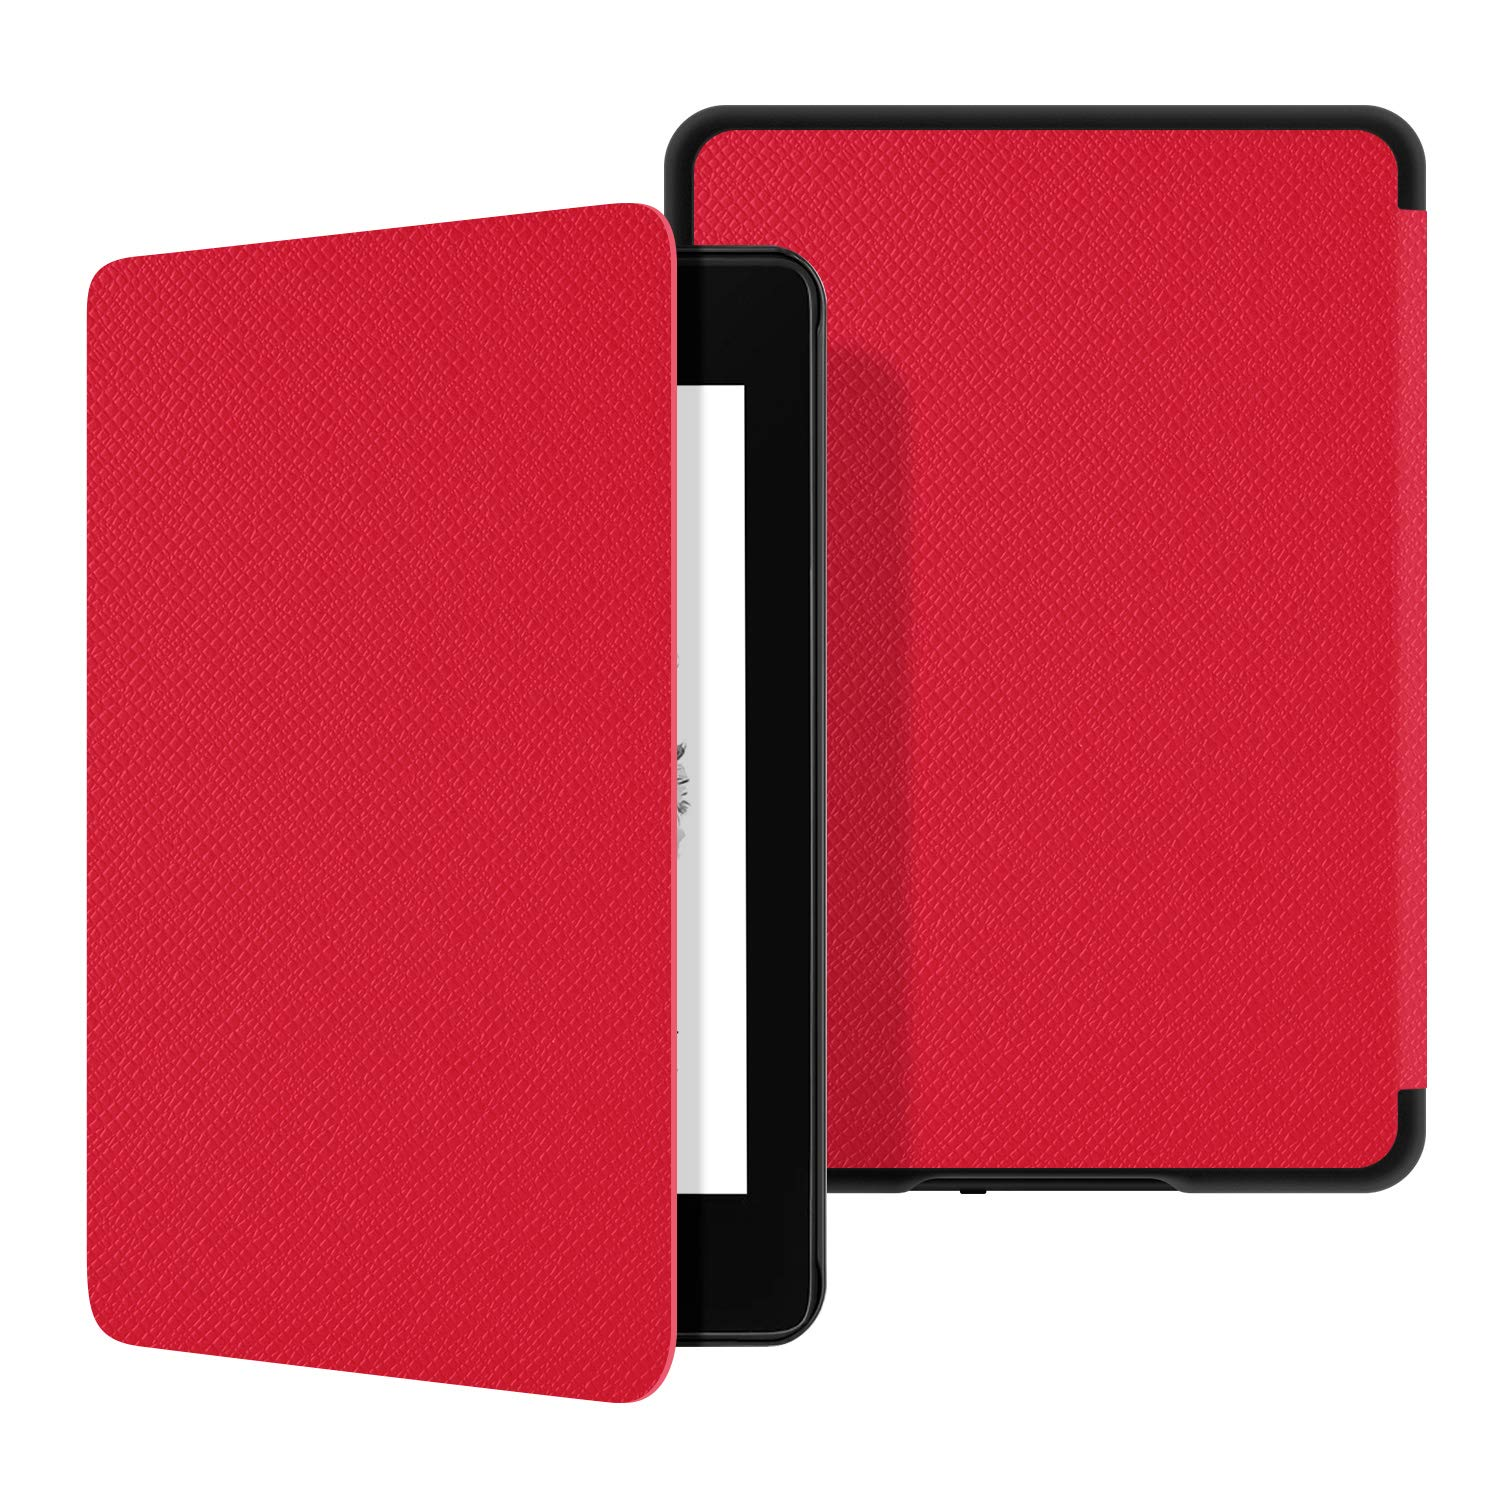 Ayotu Water-Safe Leather Case for Kindle Paperwhite 2018 - Durable Smart Leather Cover with Auto Wake/Sleep fits Amazon the latest Kindle Paperwhite (10th Generation-2018),K10 Red